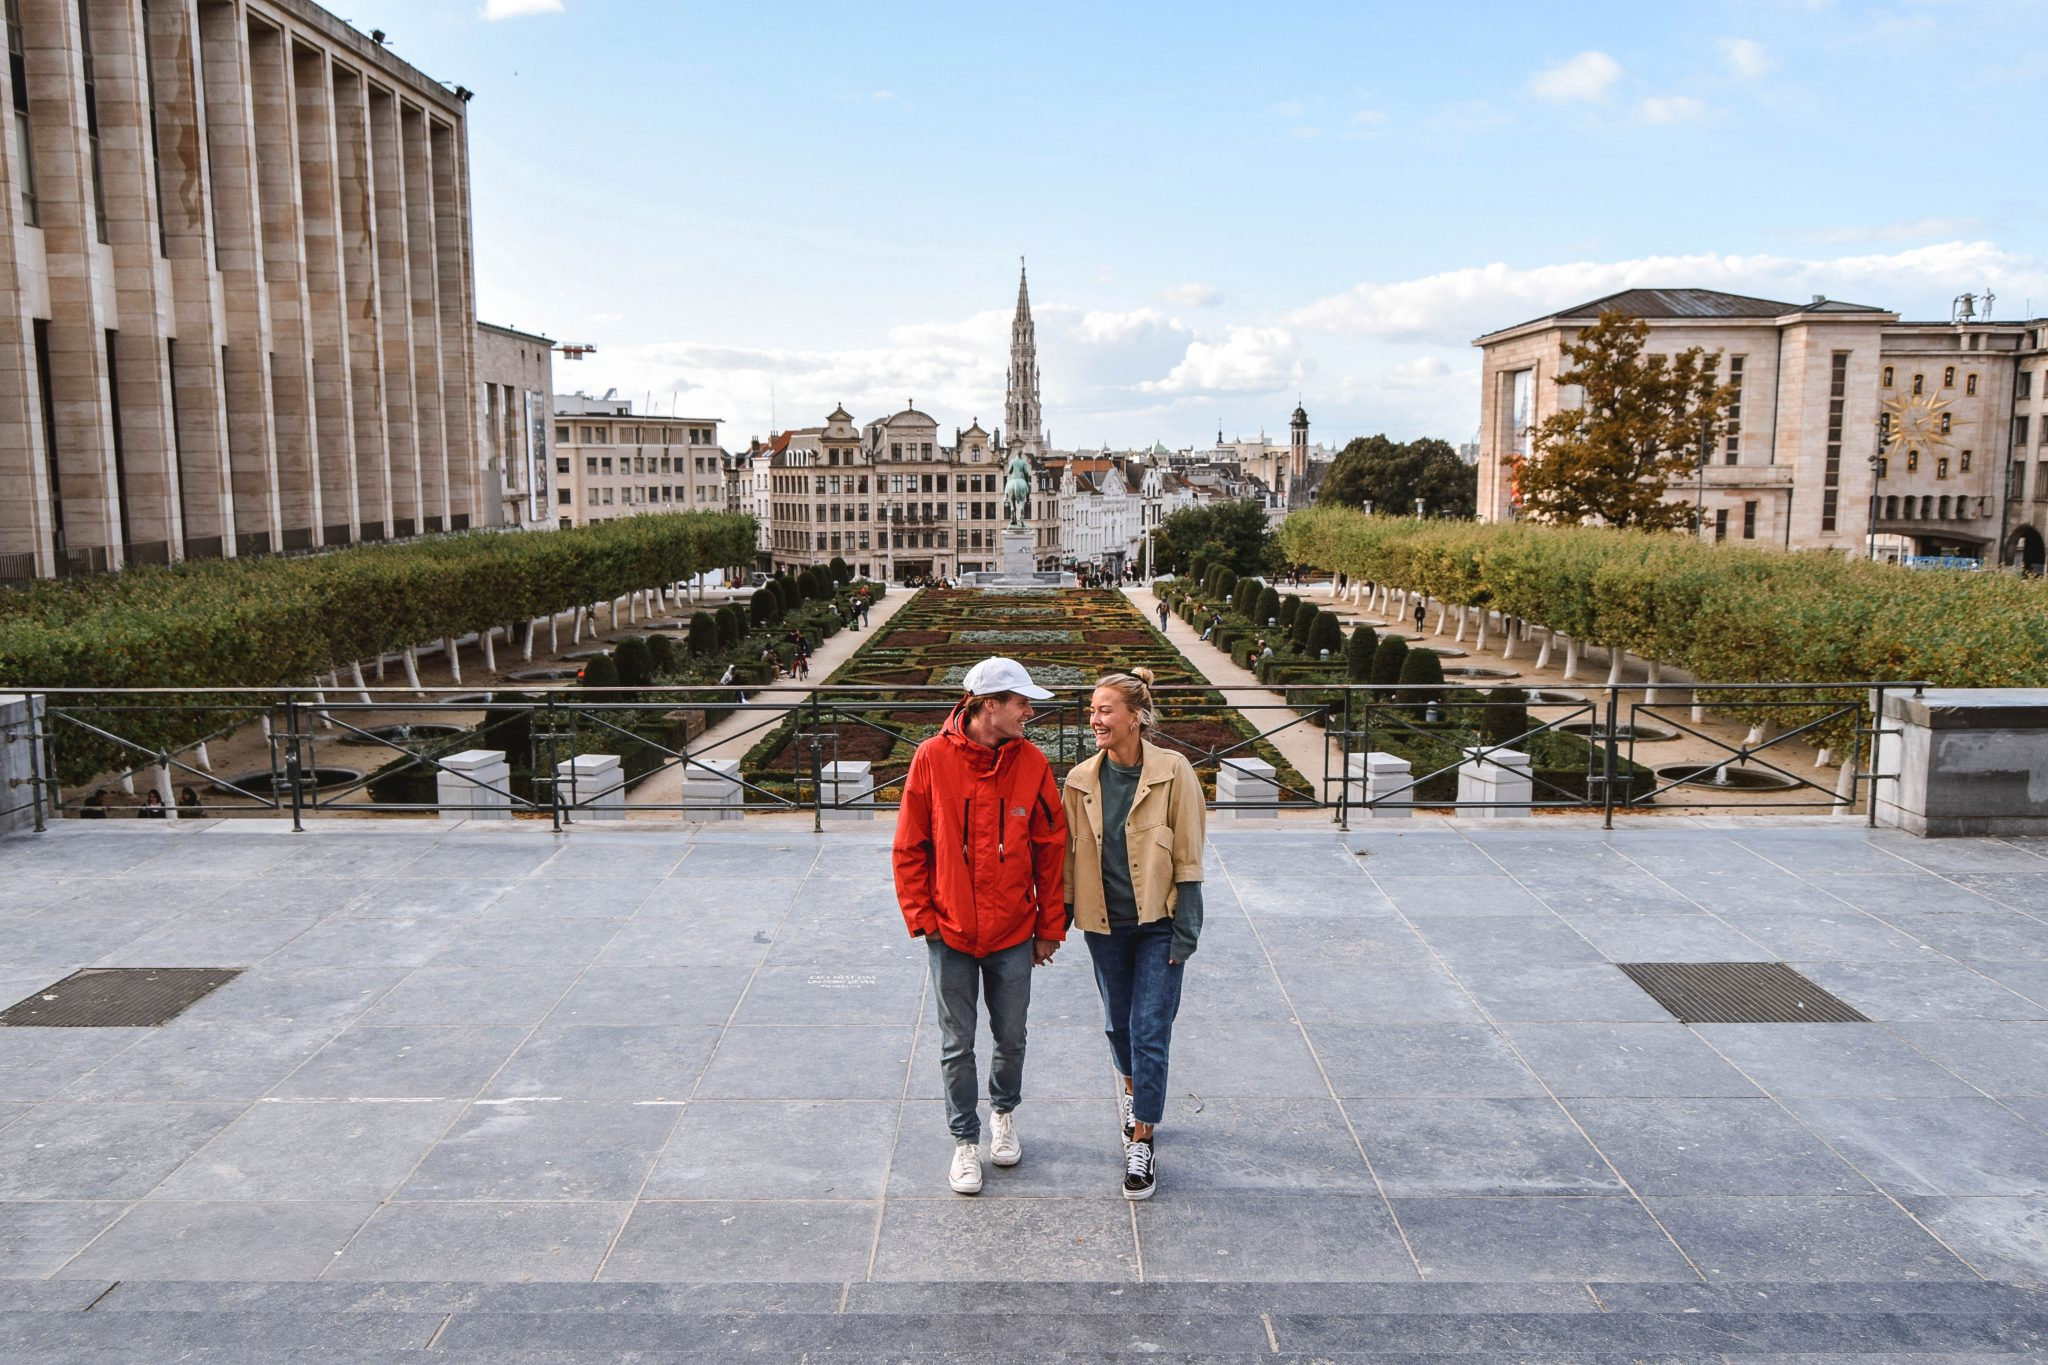 Wanderers & Warriors - Charlie & Lauren UK Travel Couple - Things To Do In Brussels In A Weekend - Mont Des Arts Brussels